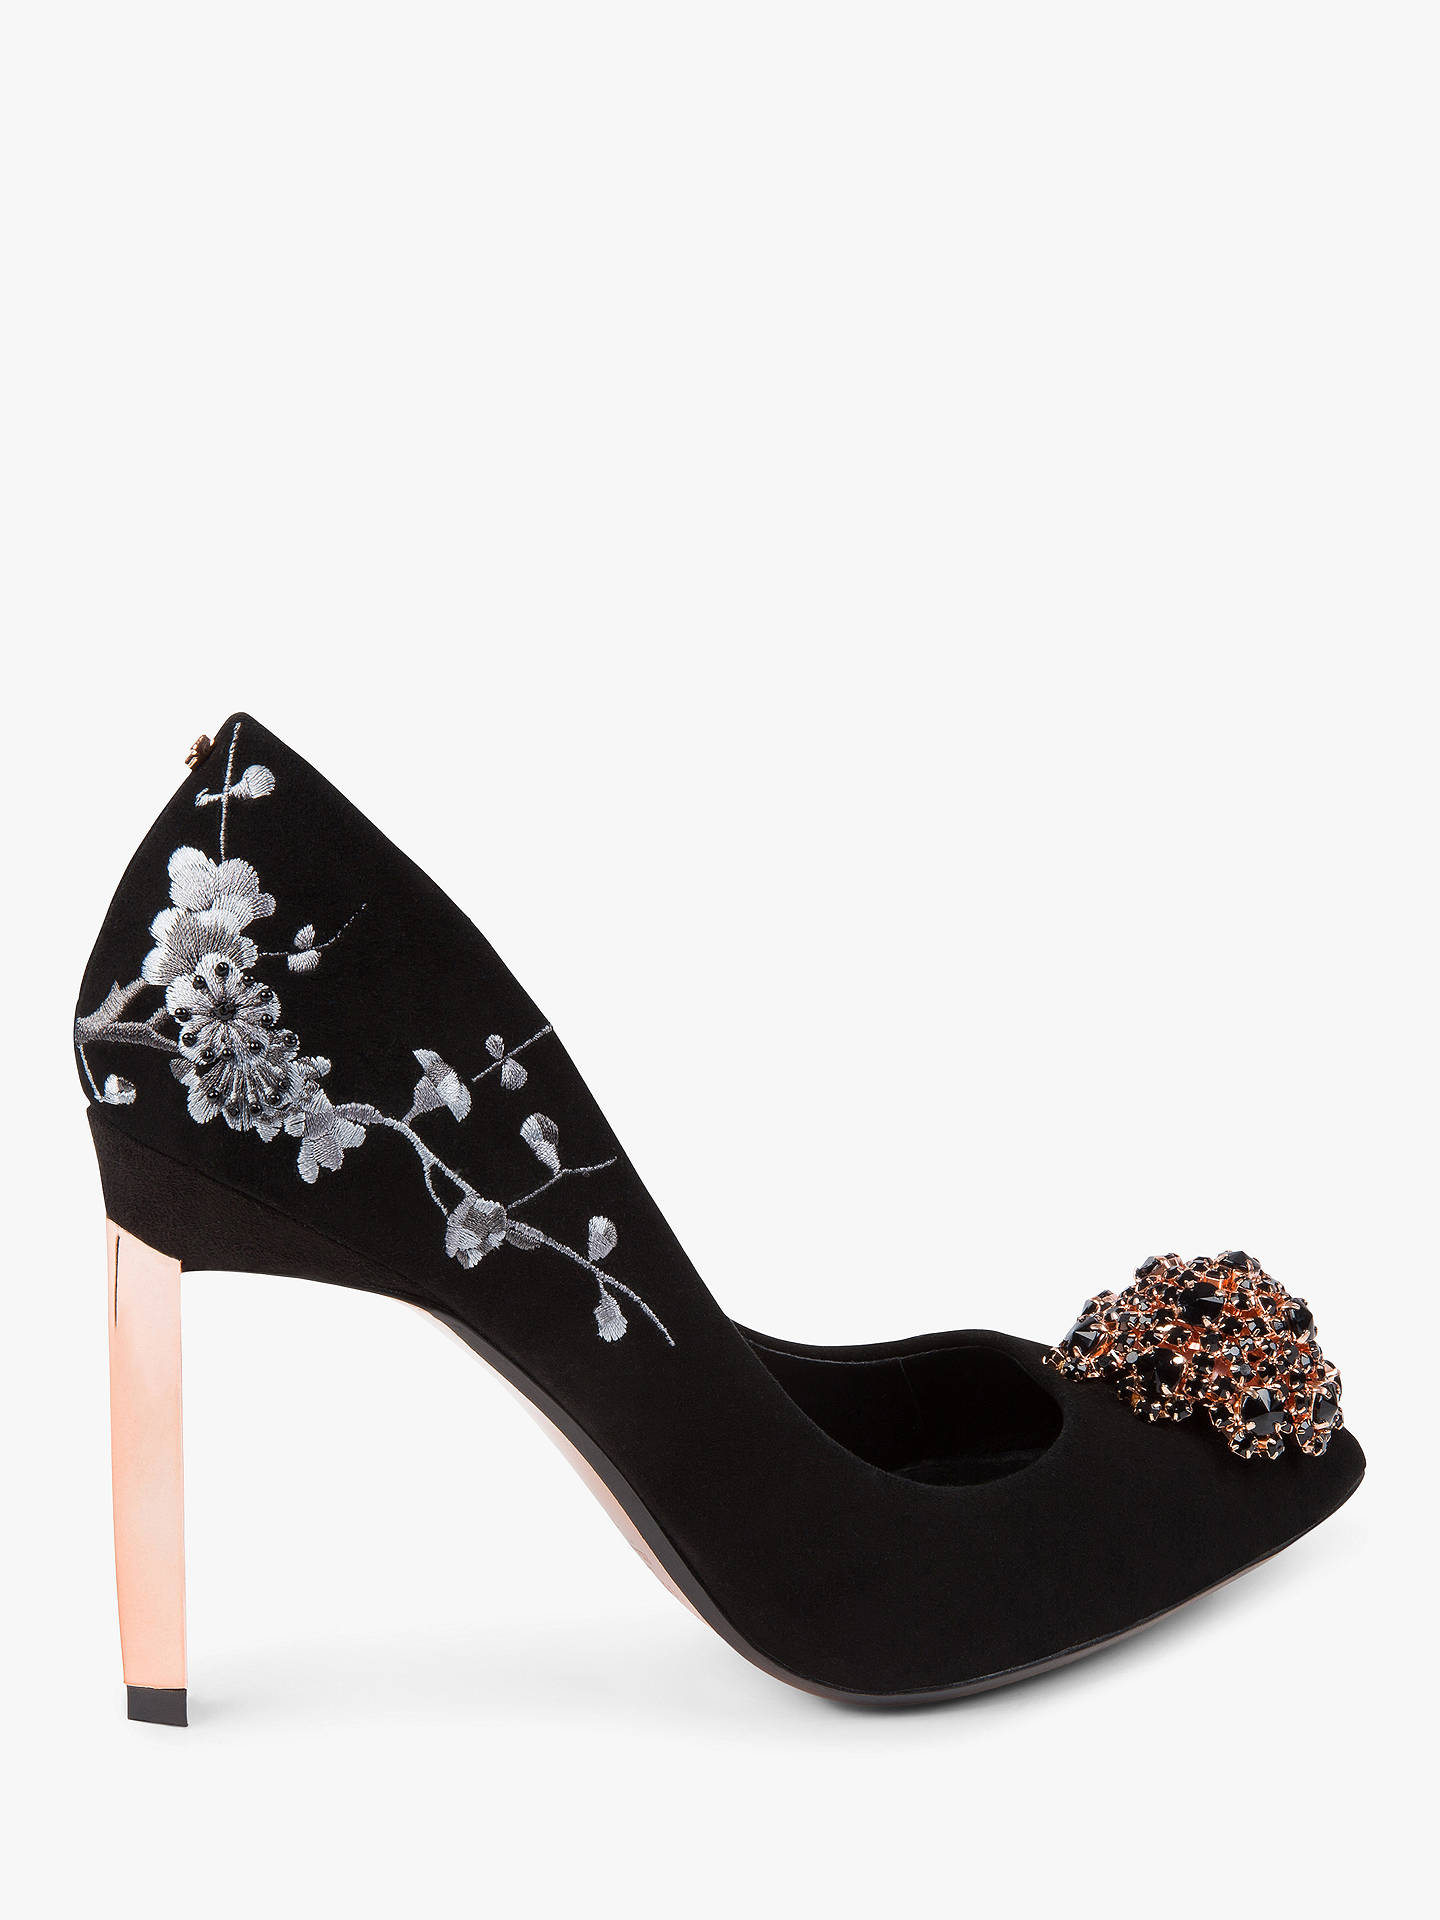 BuyTed Baker Peetche Embellished Court Shoes, Black Suede, 6 Online at johnlewis.com